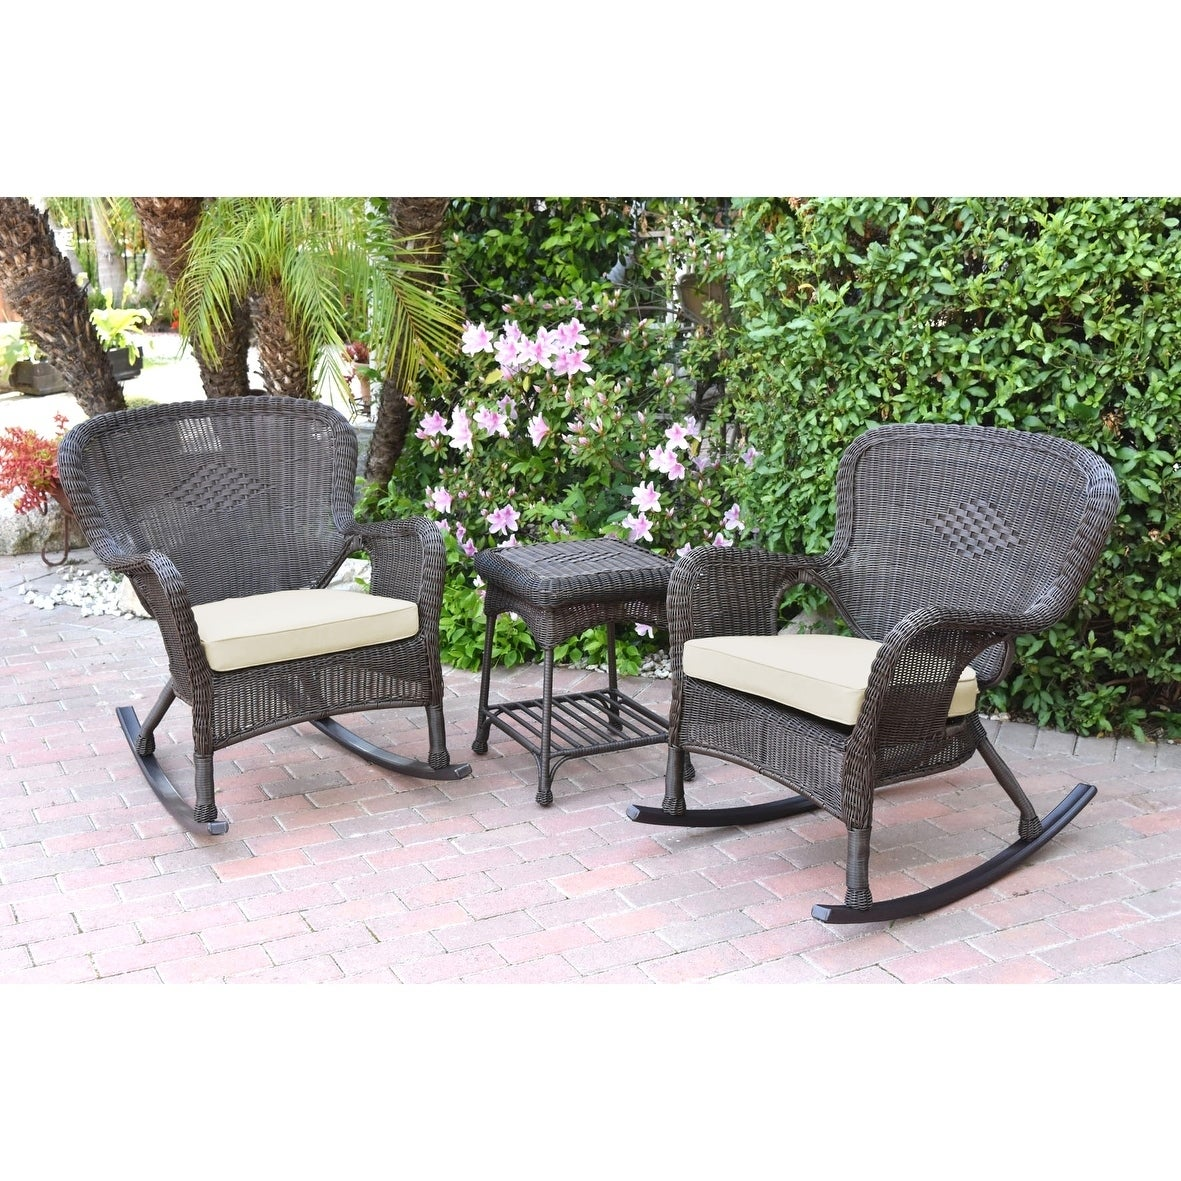 Enjoyable Windsor Espresso Wicker Rocker Chair And End Table Set With Chair Cushion Gamerscity Chair Design For Home Gamerscityorg